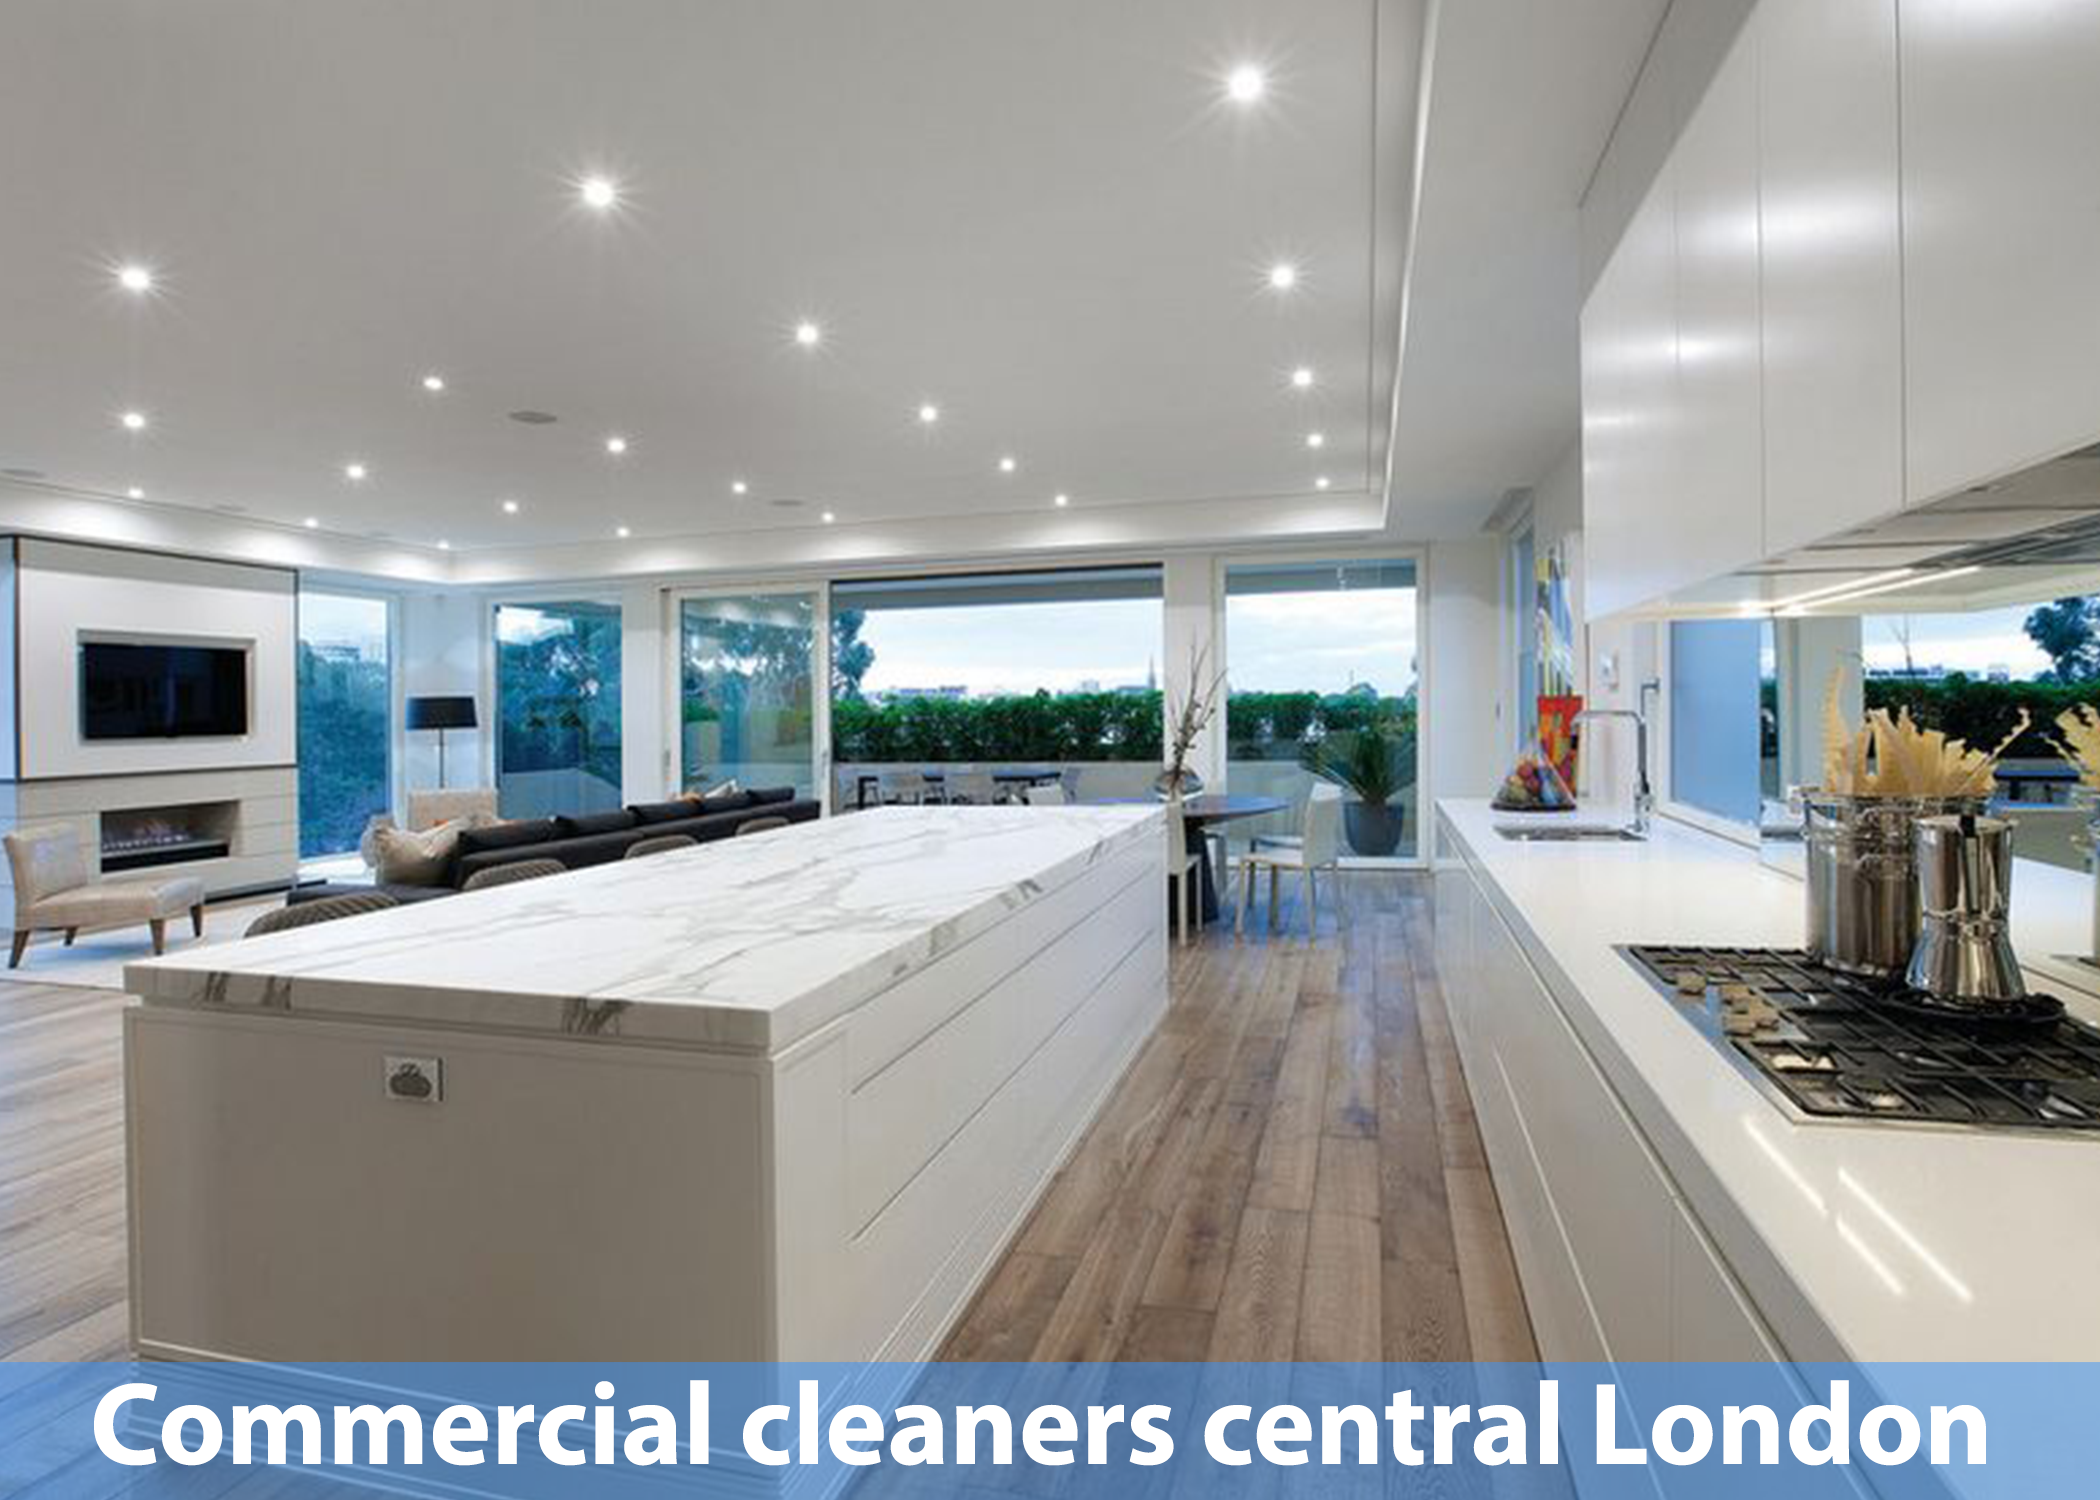 Commercial cleaners central London